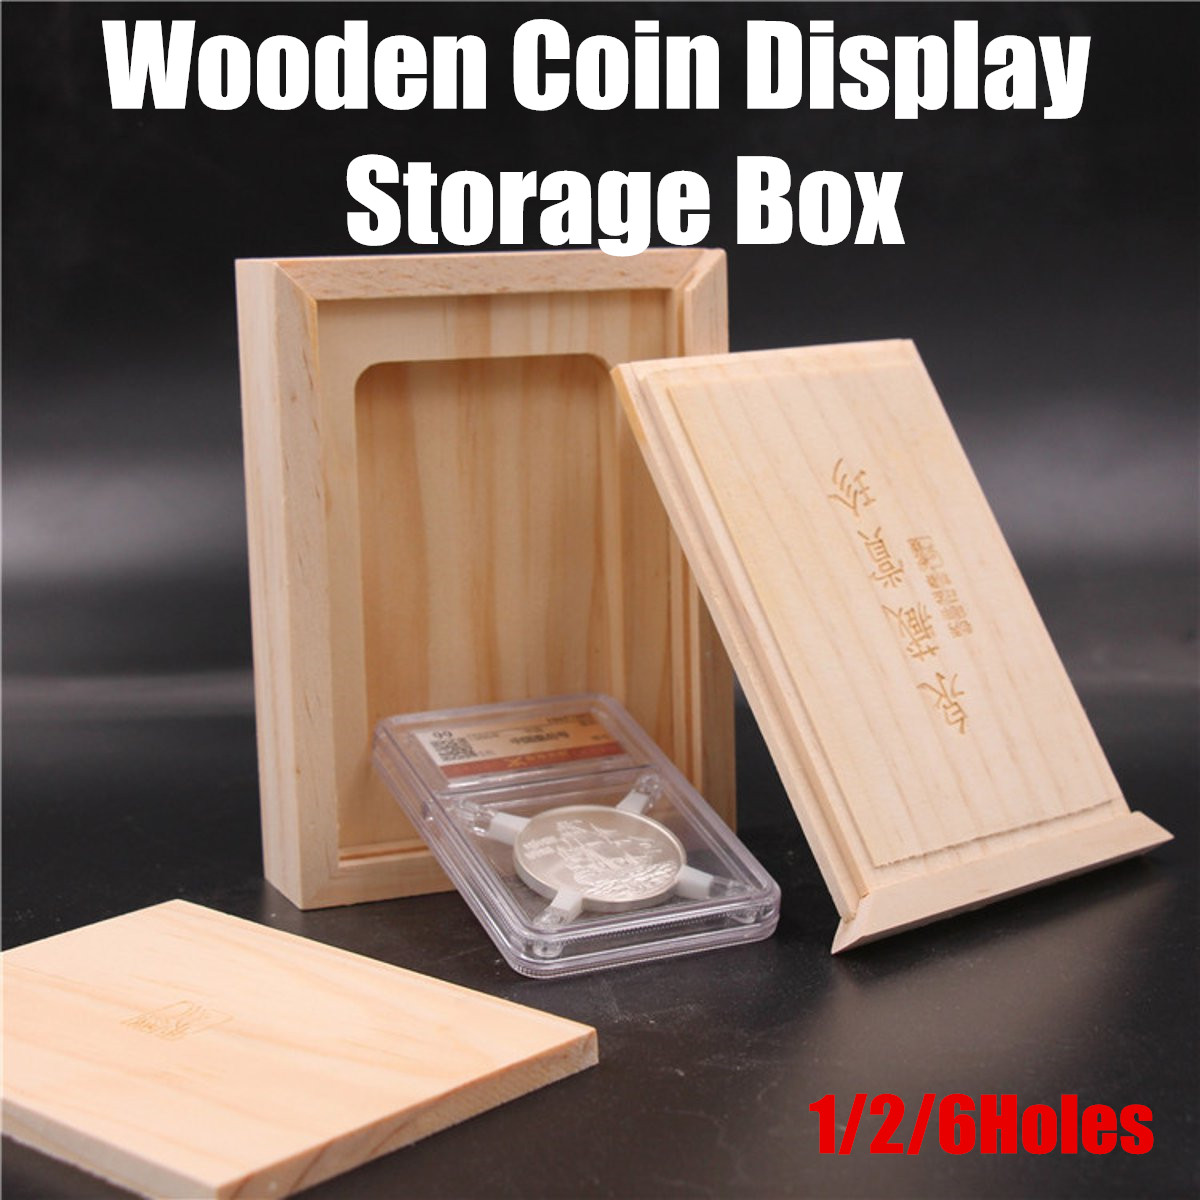 US $6 27 43% OFF|Zodiac Commemorative Coin Wooden Storage Boxes Collector  NGC ICG Protection Coin Gifts Slab Display Cases Cabinet Holder-in Storage